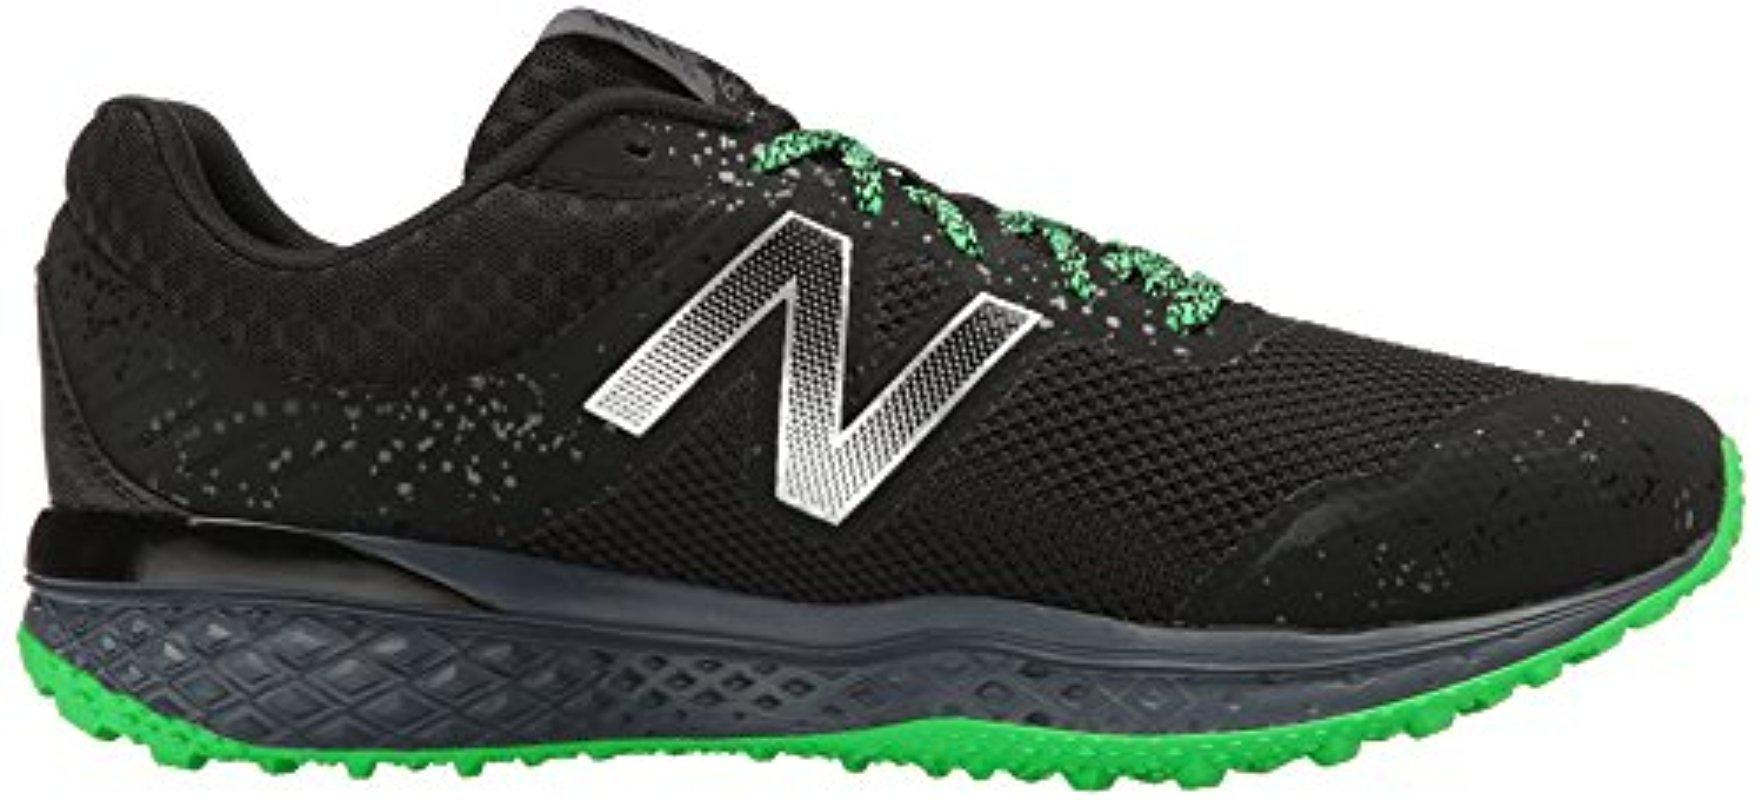 New Balance Mt620, 's Trail Running Shoes in Black for Men - Lyst